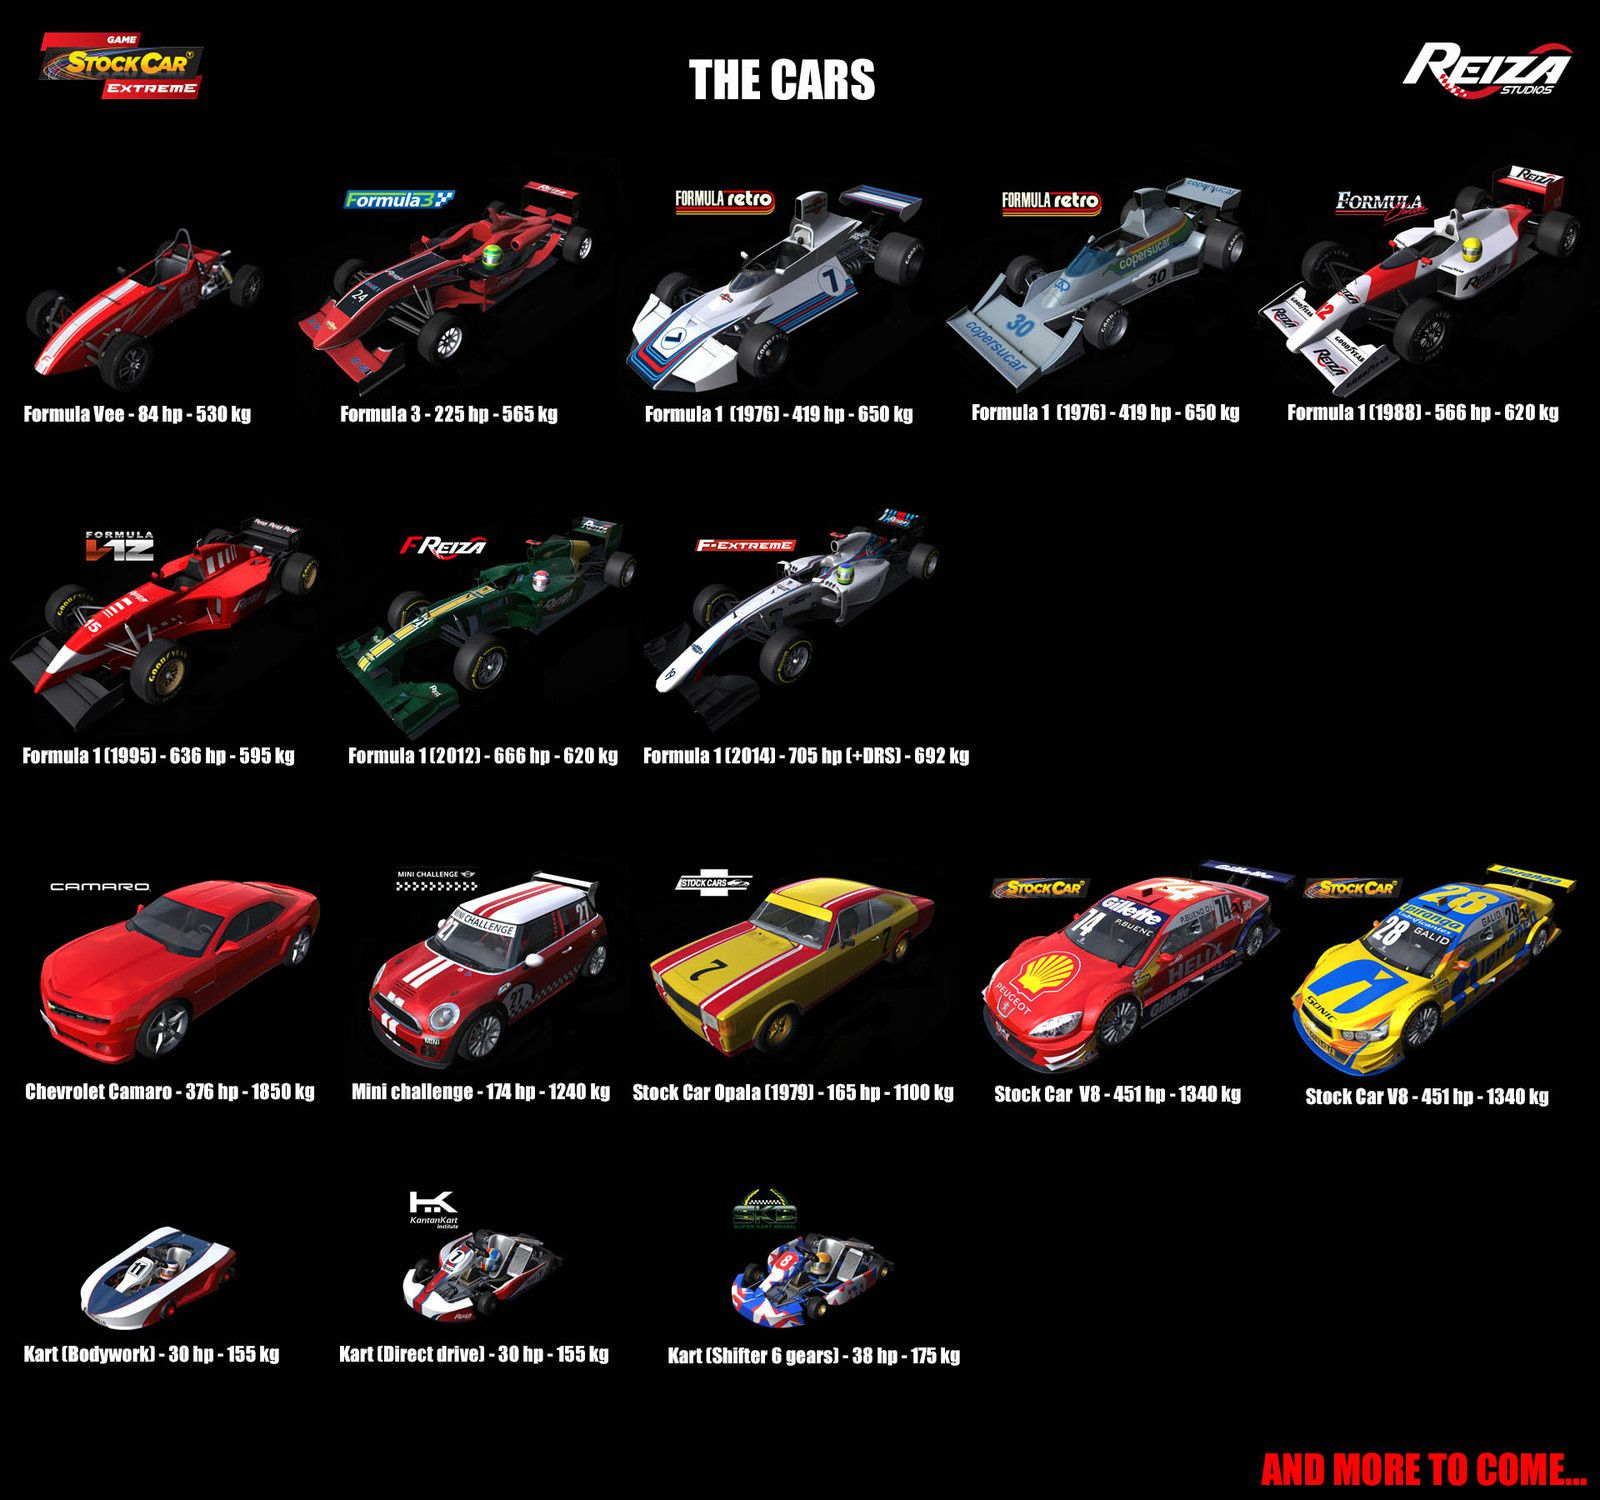 La revue Game Stock Car Extreme